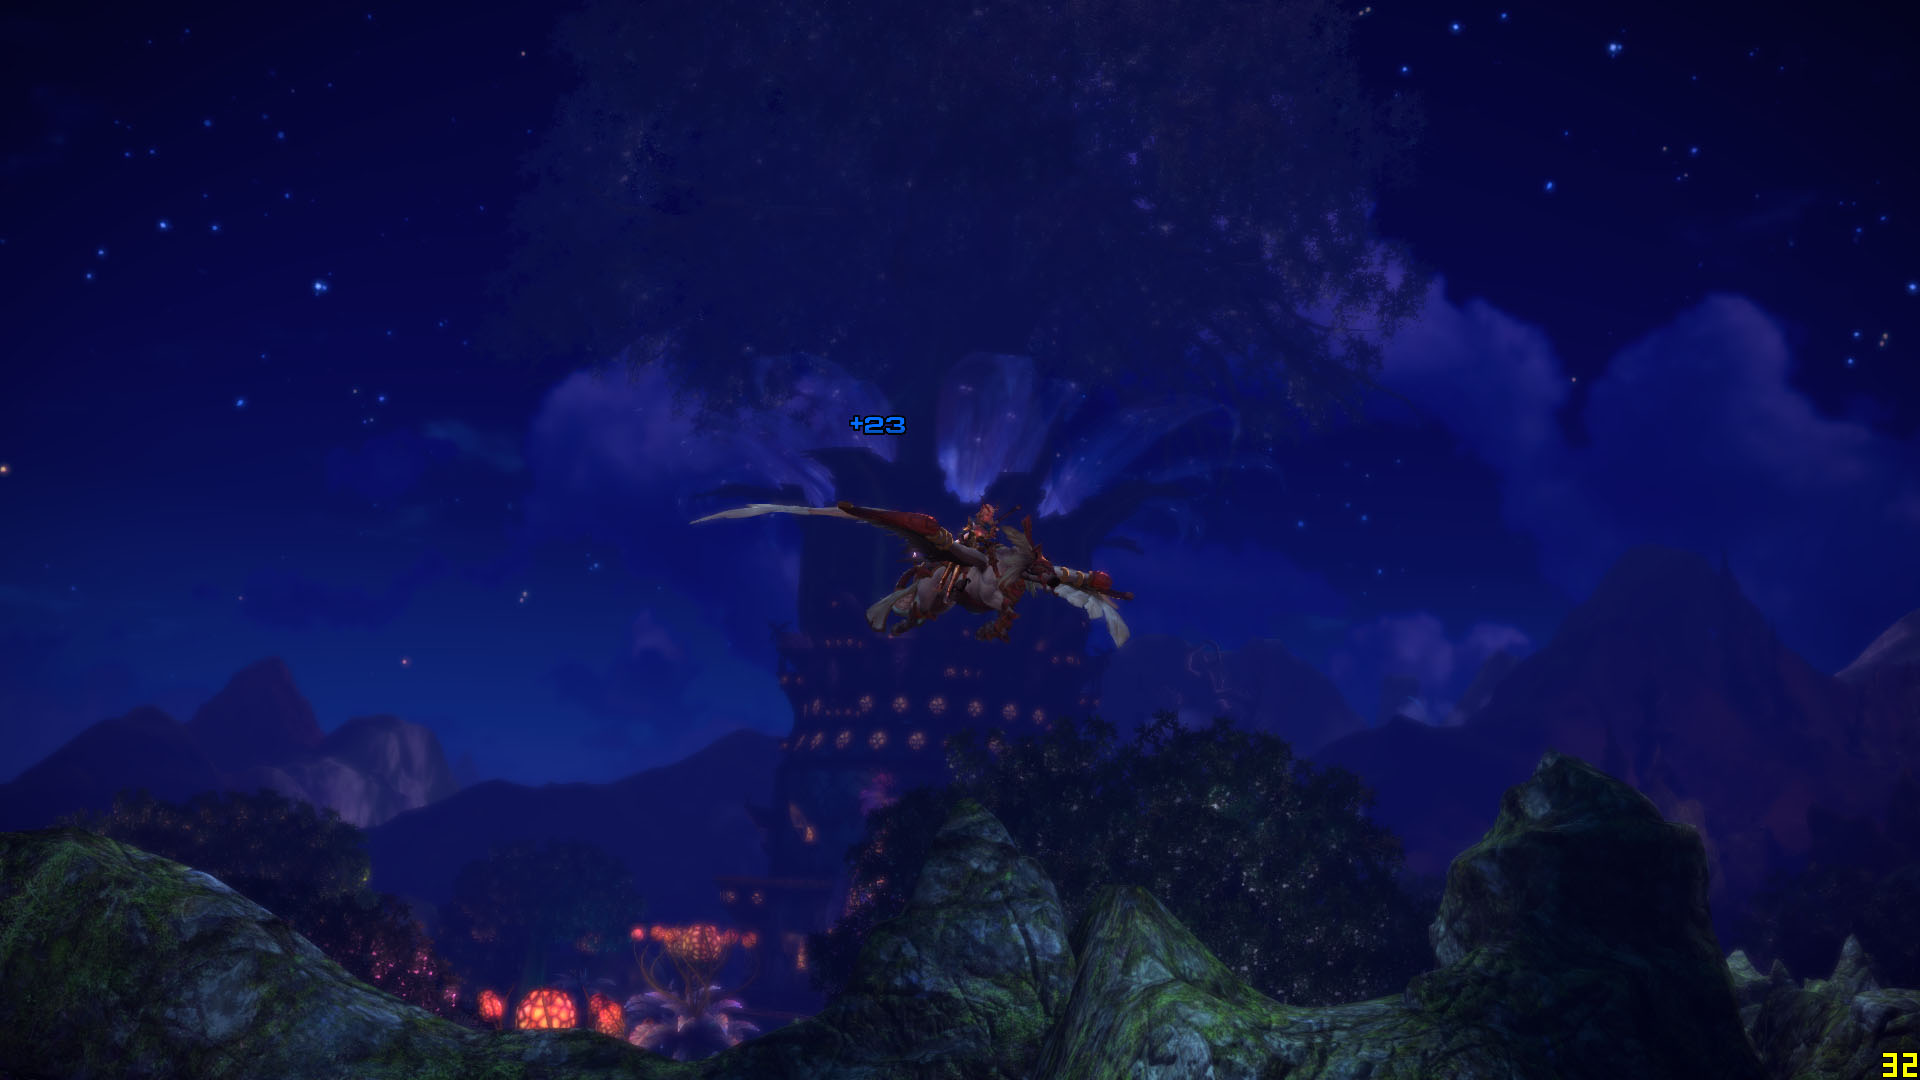 shassira games opening gameplay trailer experience preview online media removed heres tera